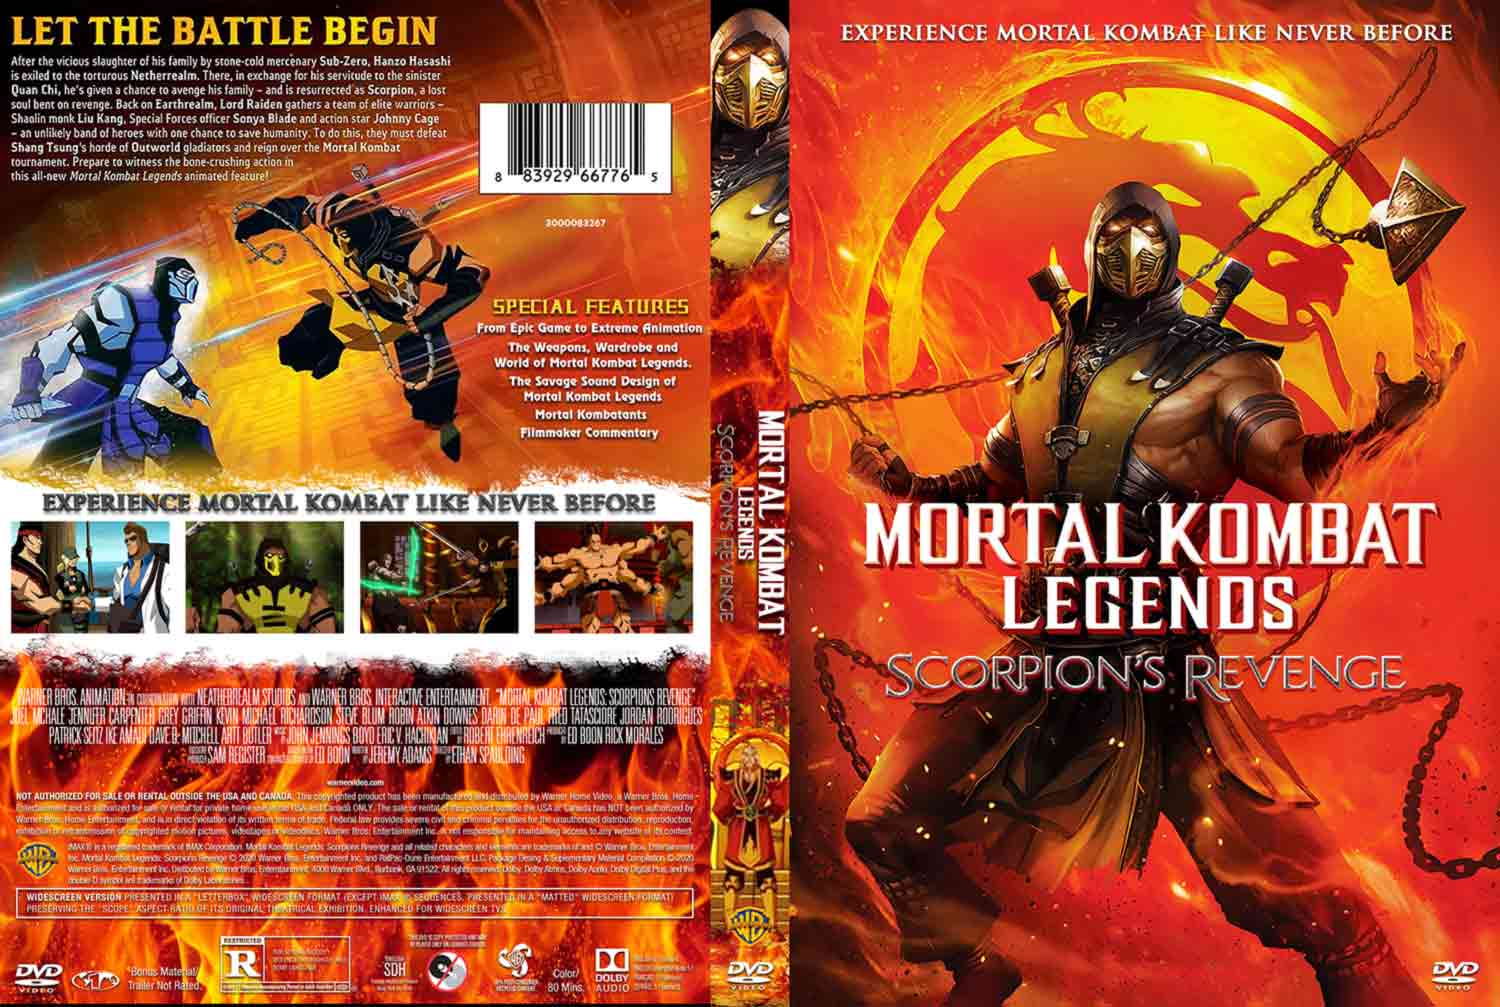 Mortal Kombat Legends Scorpions Revenge Dvd Cover Cover Addict Free Dvd Bluray Covers And Movie Posters